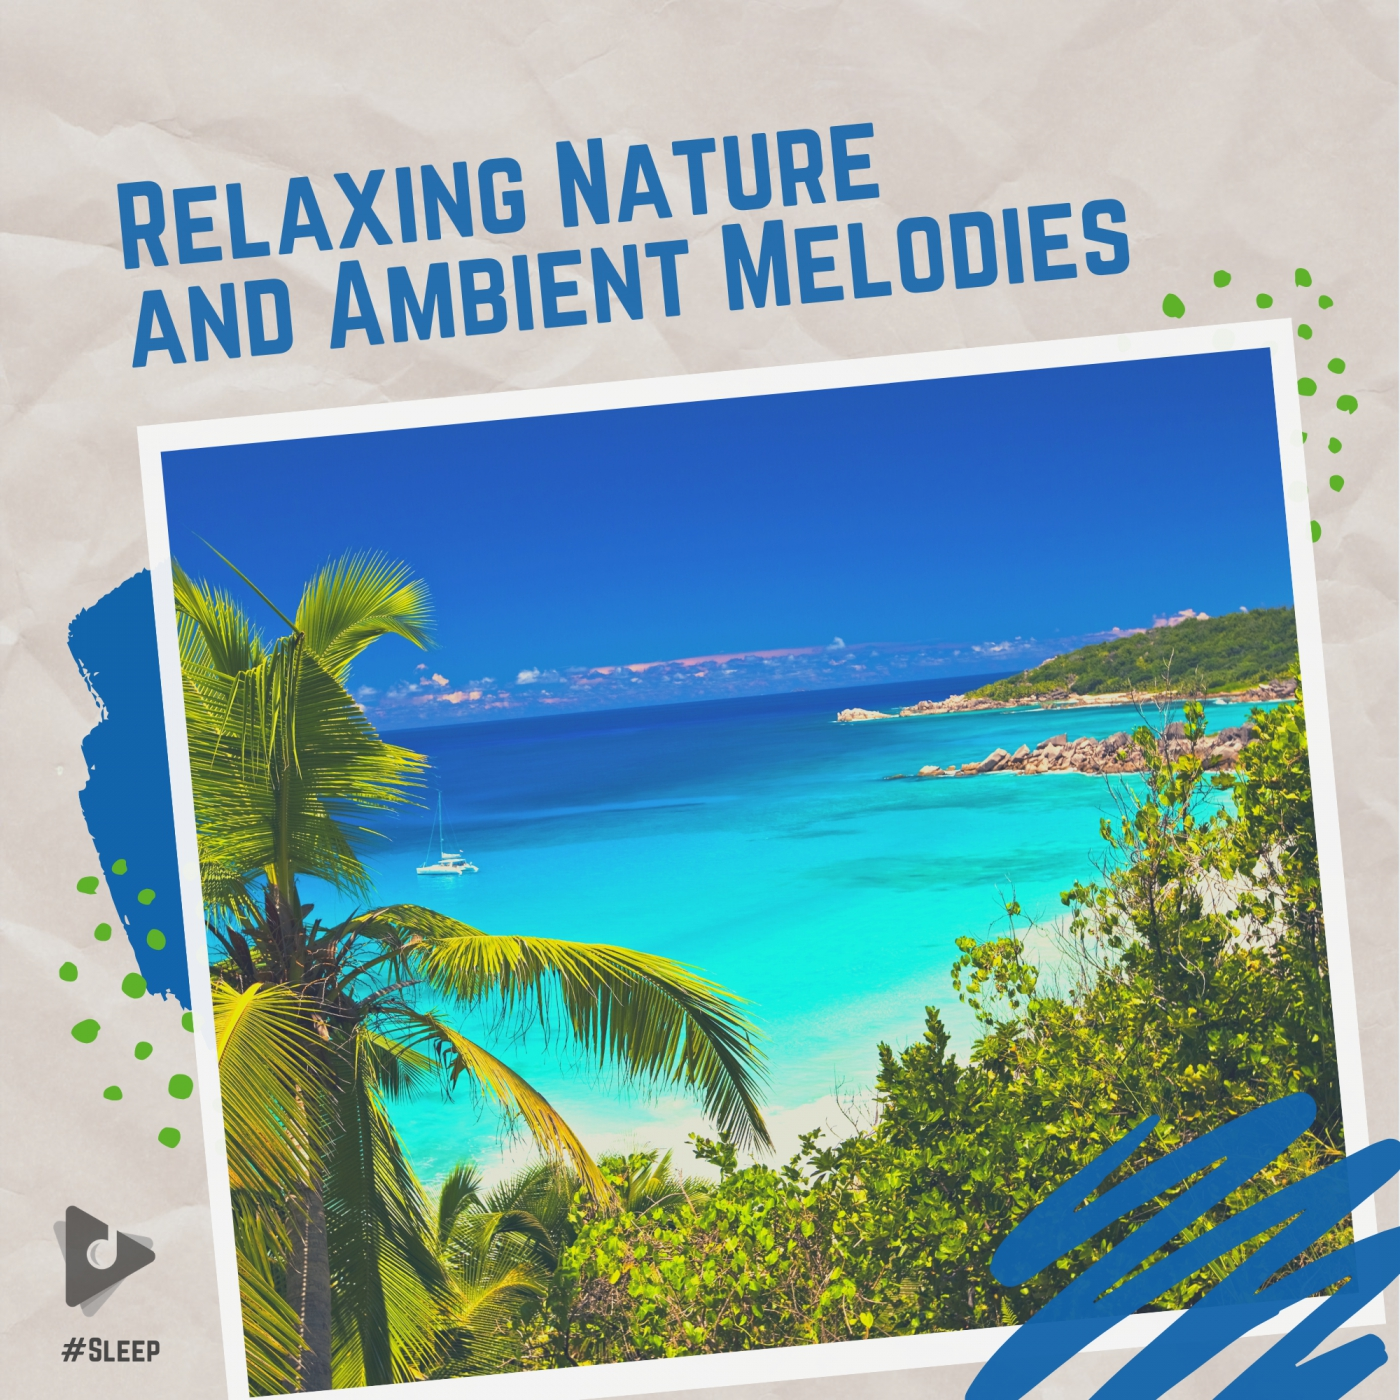 Relaxing Nature and Ambient Melodies